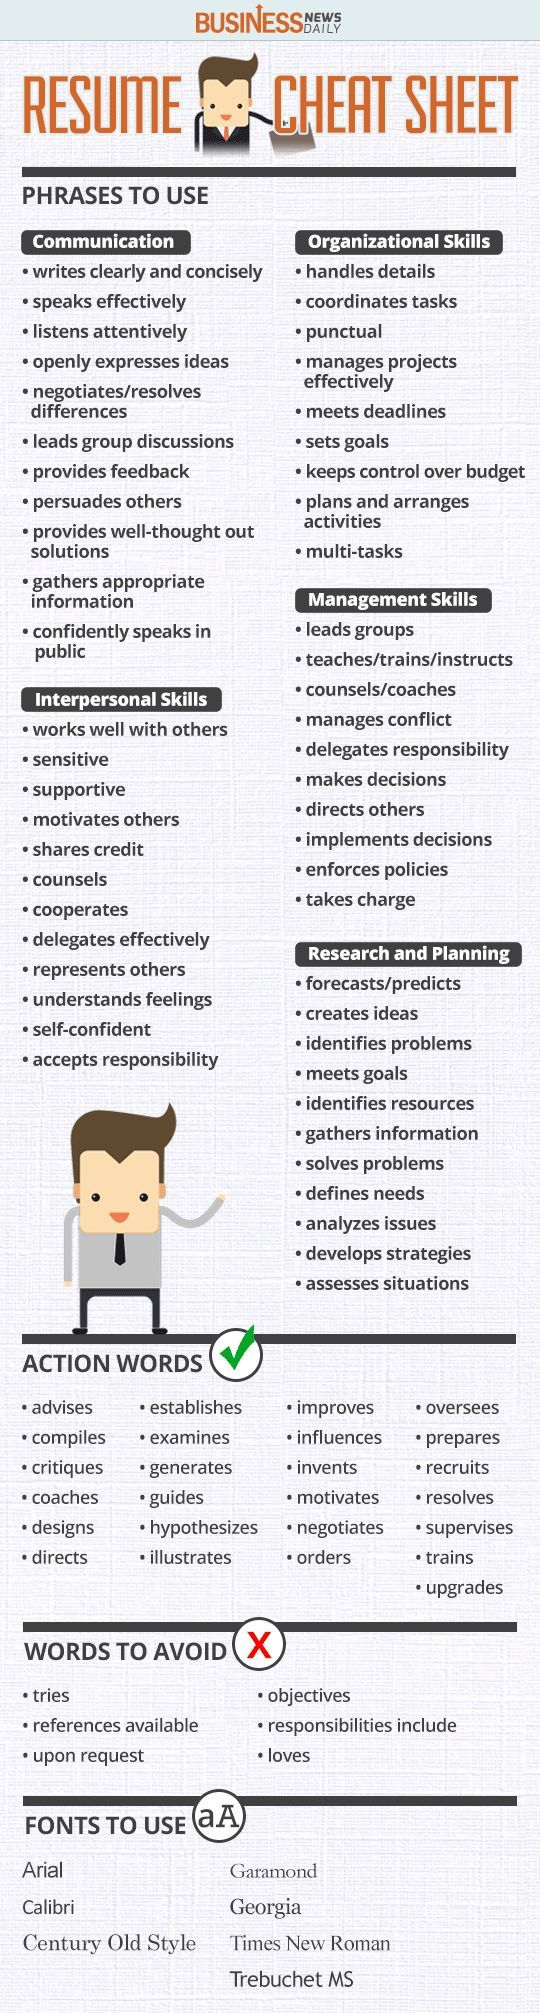 17 best images about making a good cv resume tips crystaldiercks the only resume cheat sheet you will ever need is putting your resume together making you question if you should apply for a job